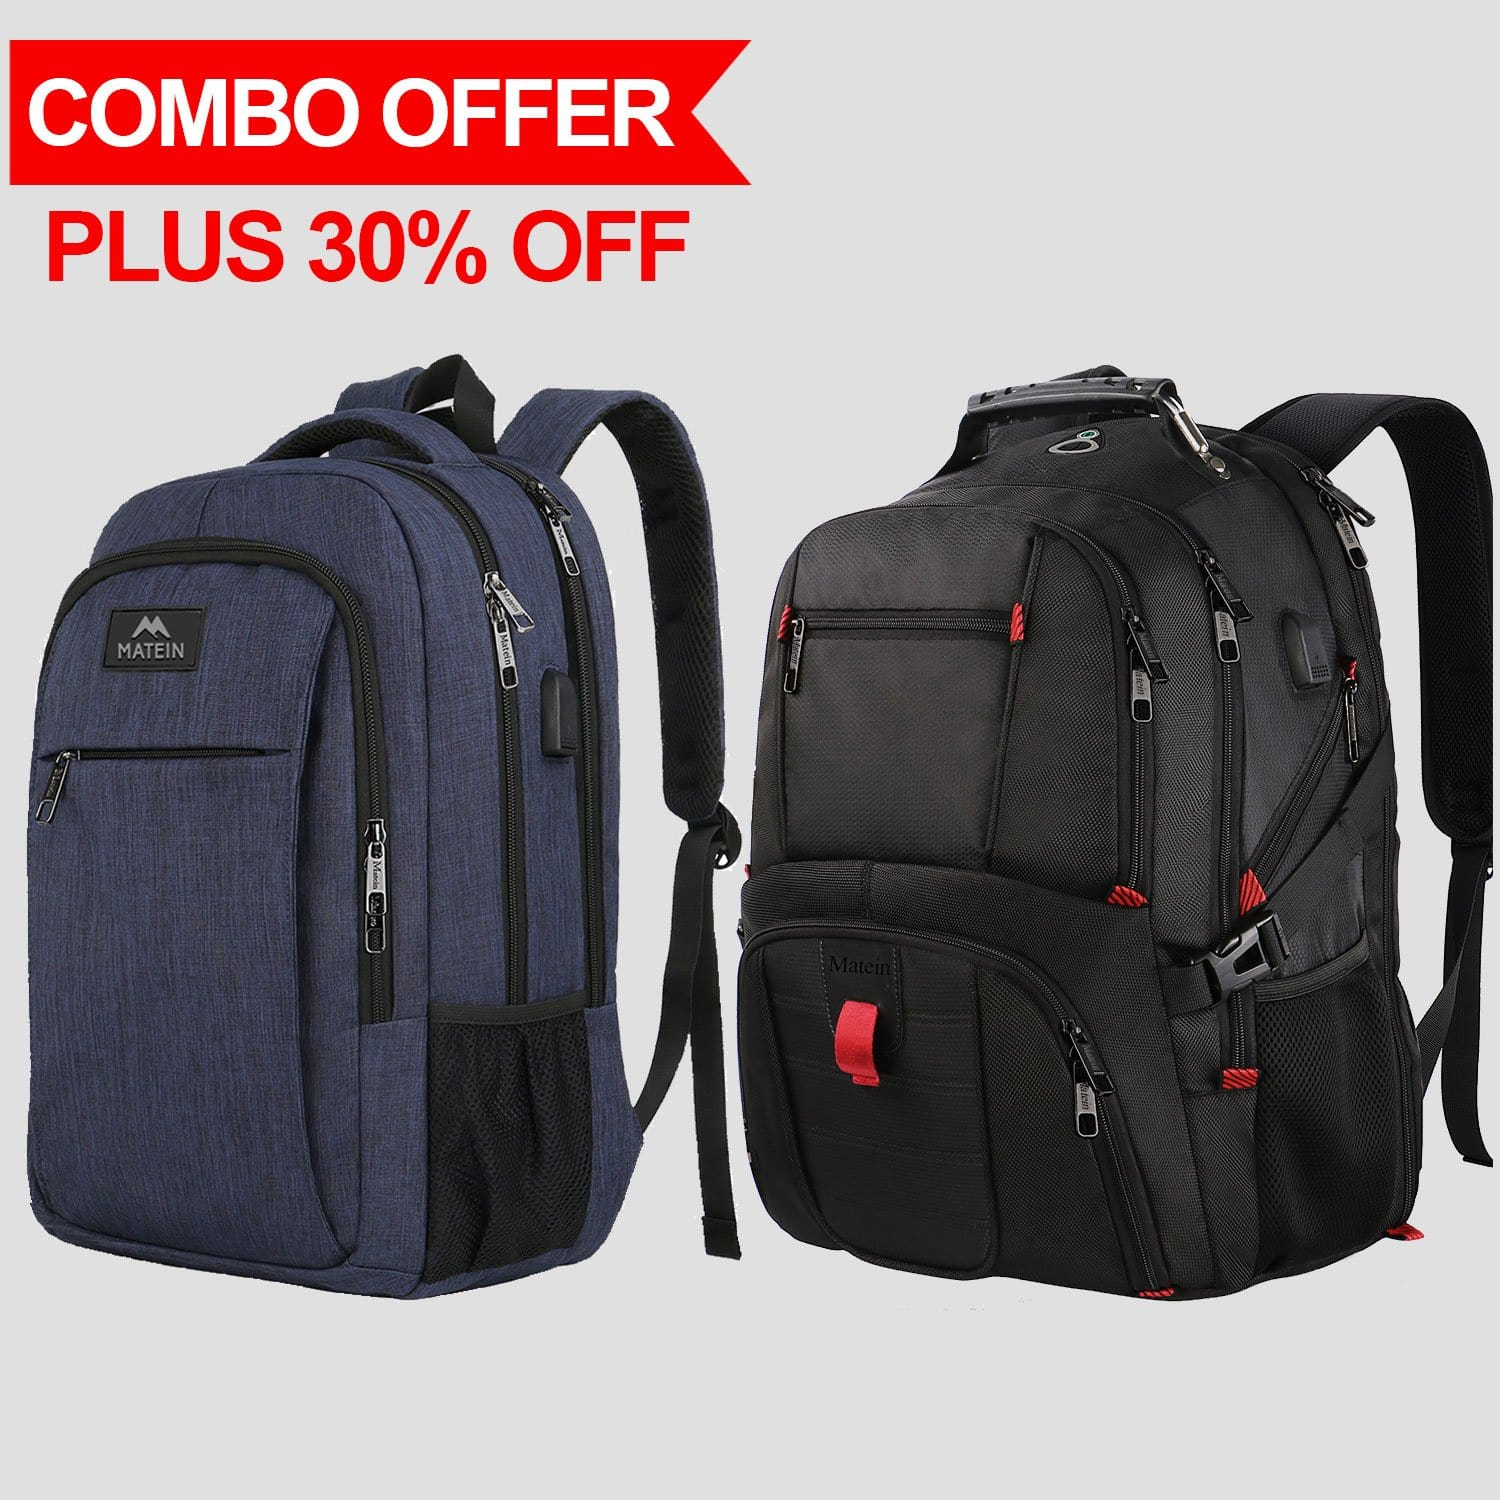 The Mlassic Backpack and TSA Backpack - travel laptop backpack